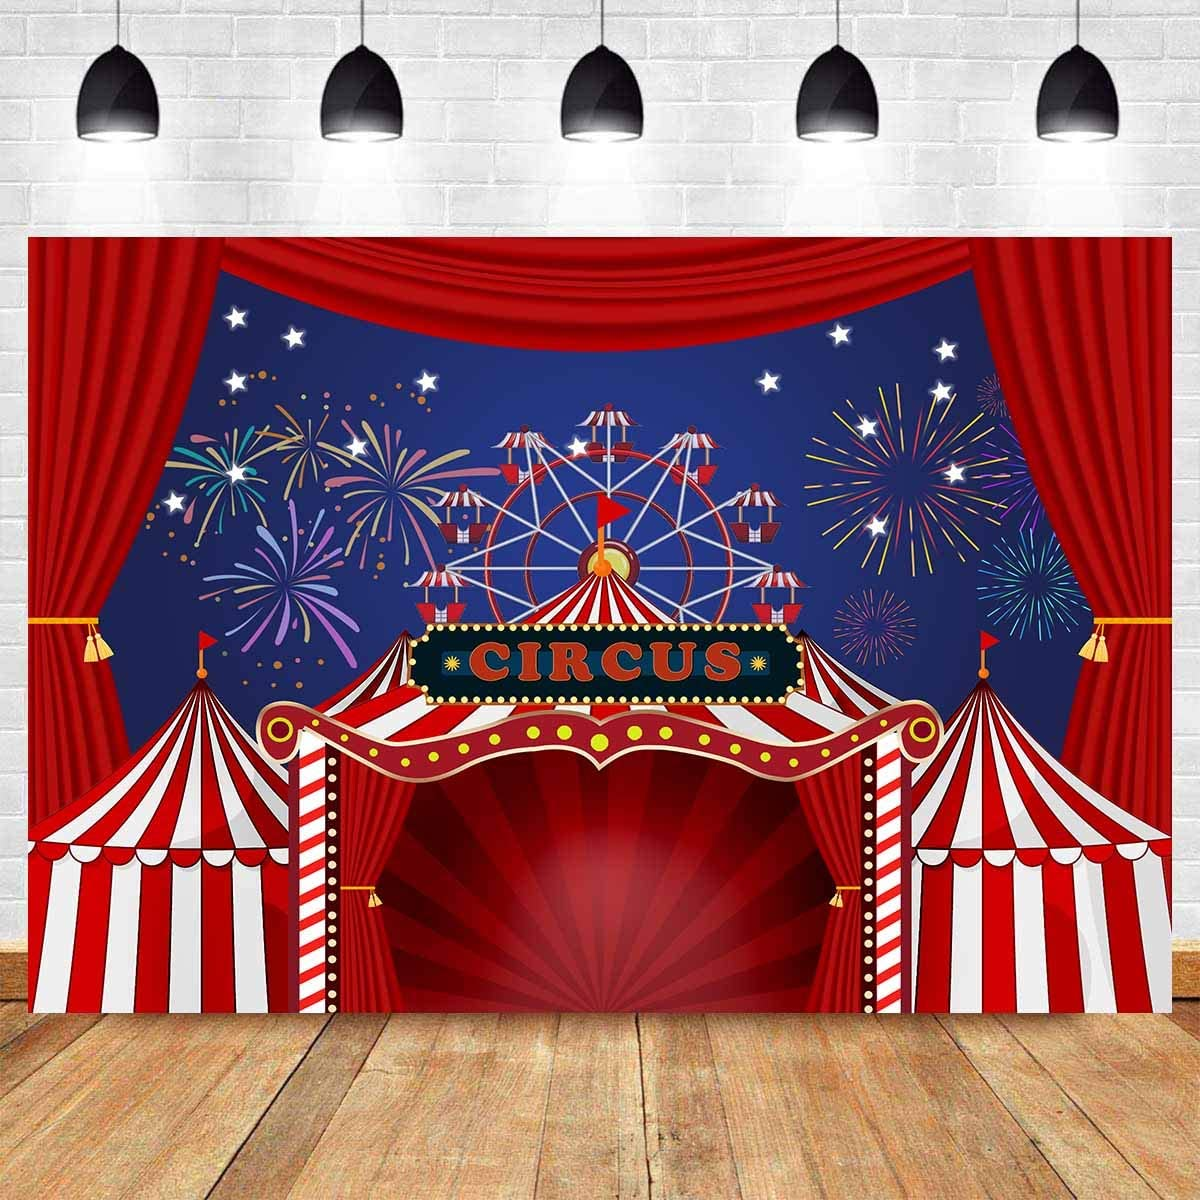 10x6.5ft Funfair Red Camp Background for Photography Carnival Themed Party Backdrop Photo Props DSFU219